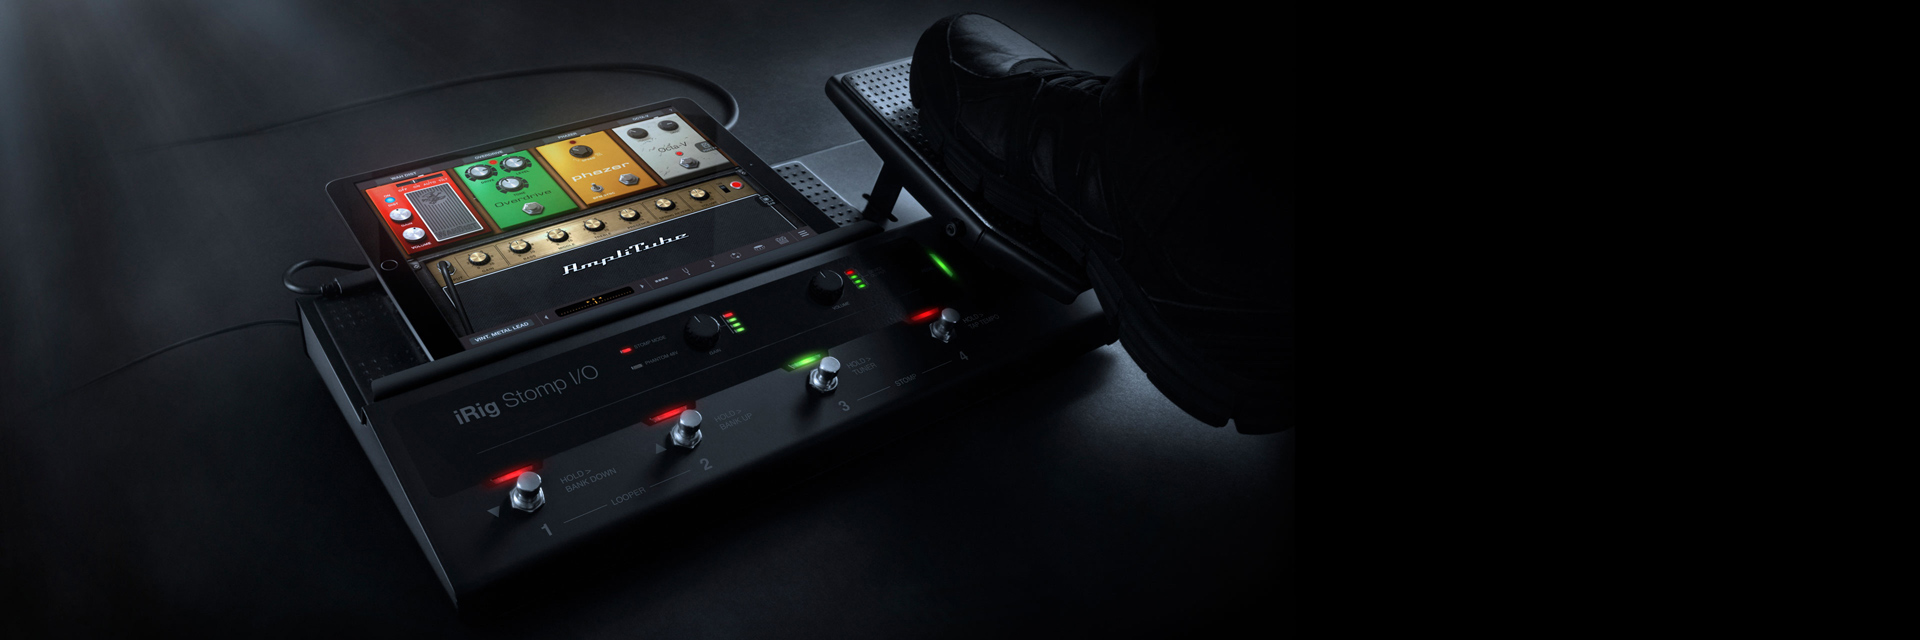 Irig Stomp I O Download Image Avr Usb Programmer Pc Android Iphone And Ipad Your Ultimate Tone Control Rig Ready To Rock Record